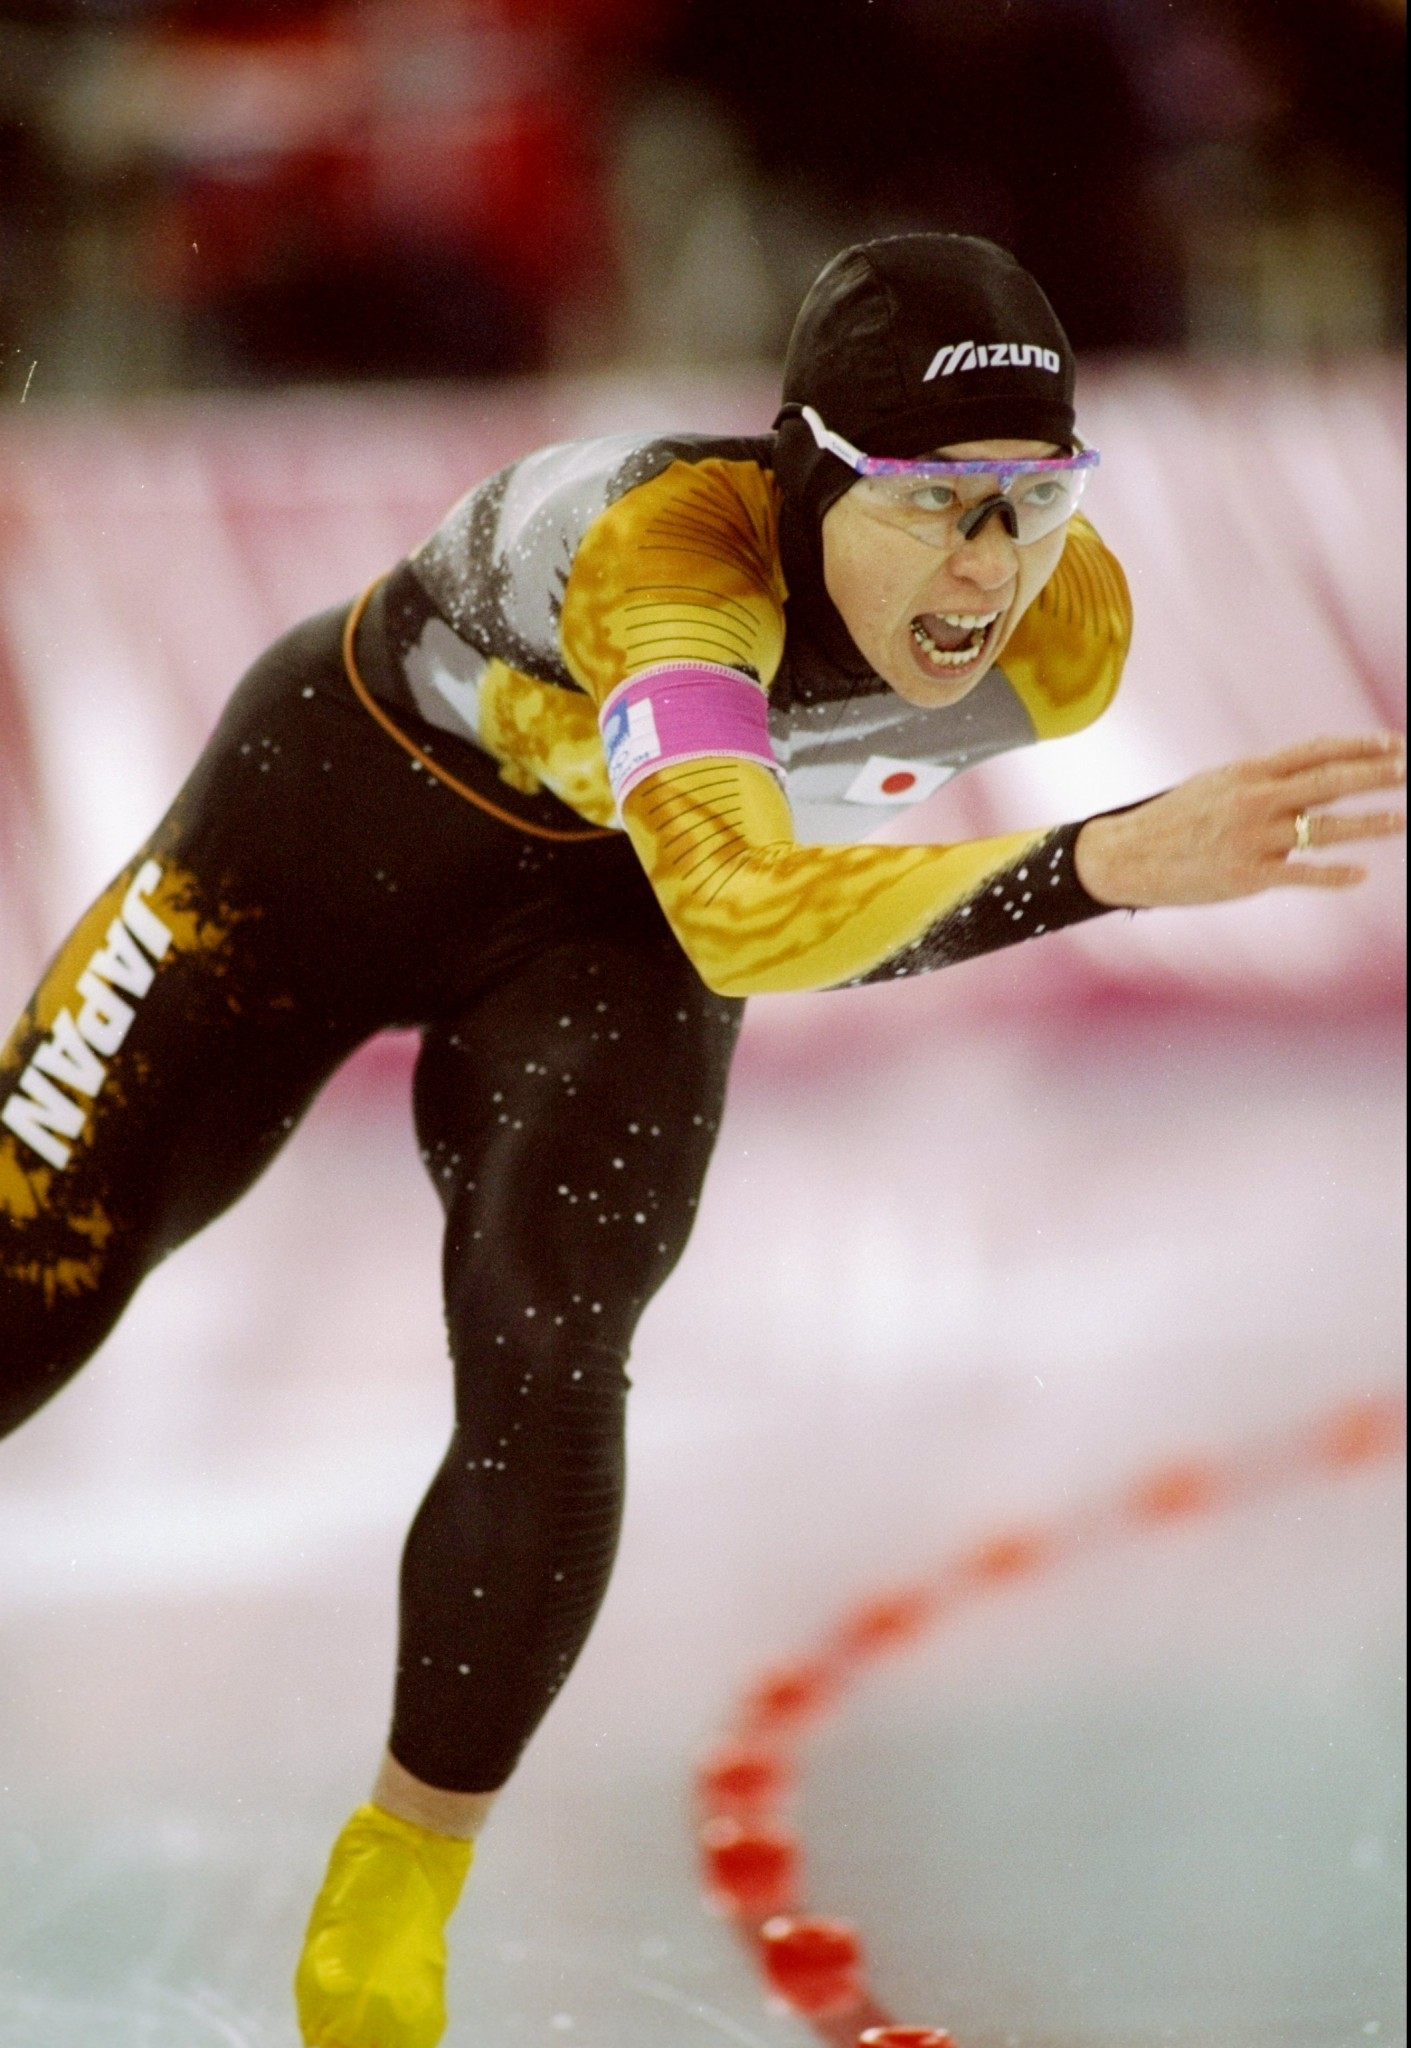 Seiko Hashimoto won Olympic bronze during her speed skating career ©Getty Images